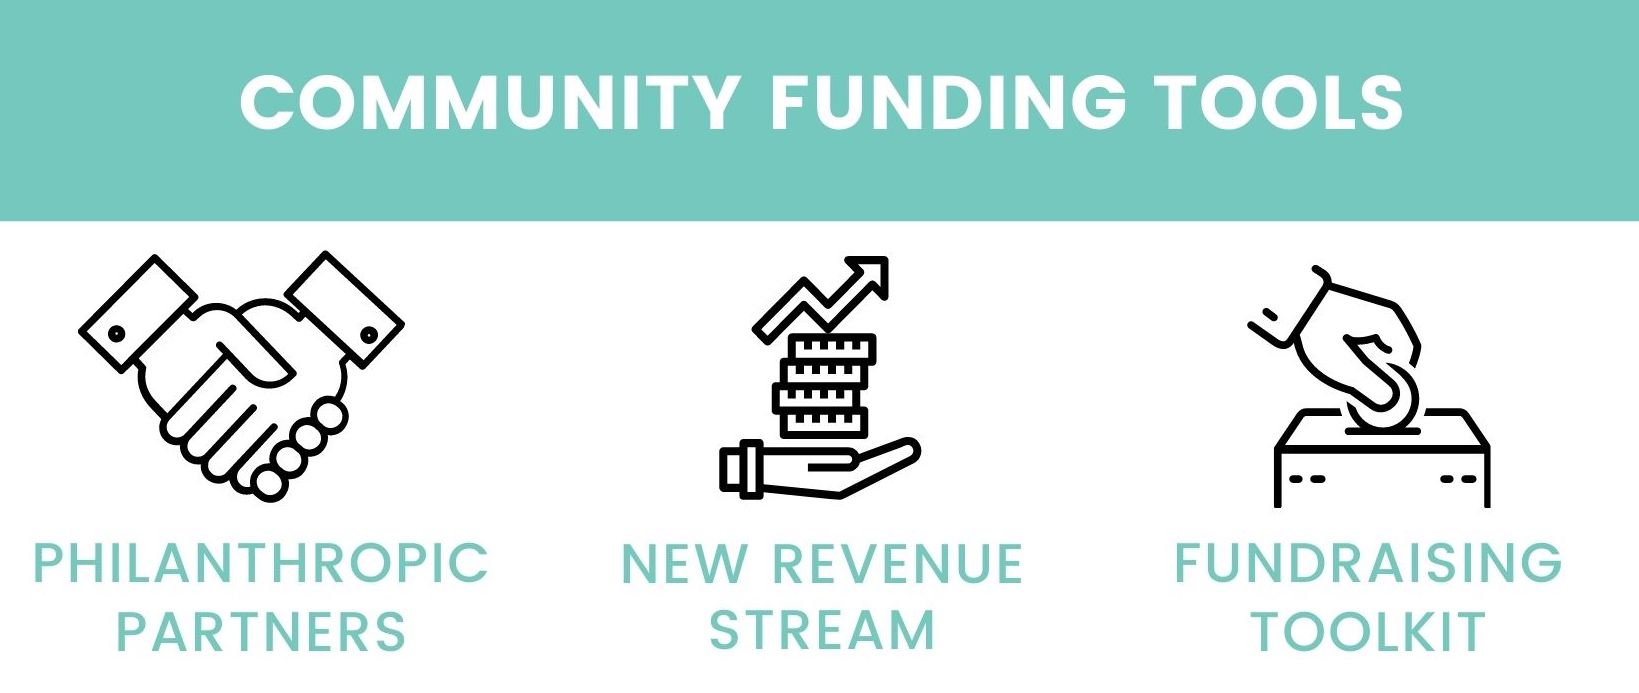 A graphic highlighting GoLogic's Community Funding Tools which include Philanthropic Partners, A New Revenue Stream, and a Fundraising Toolkit.